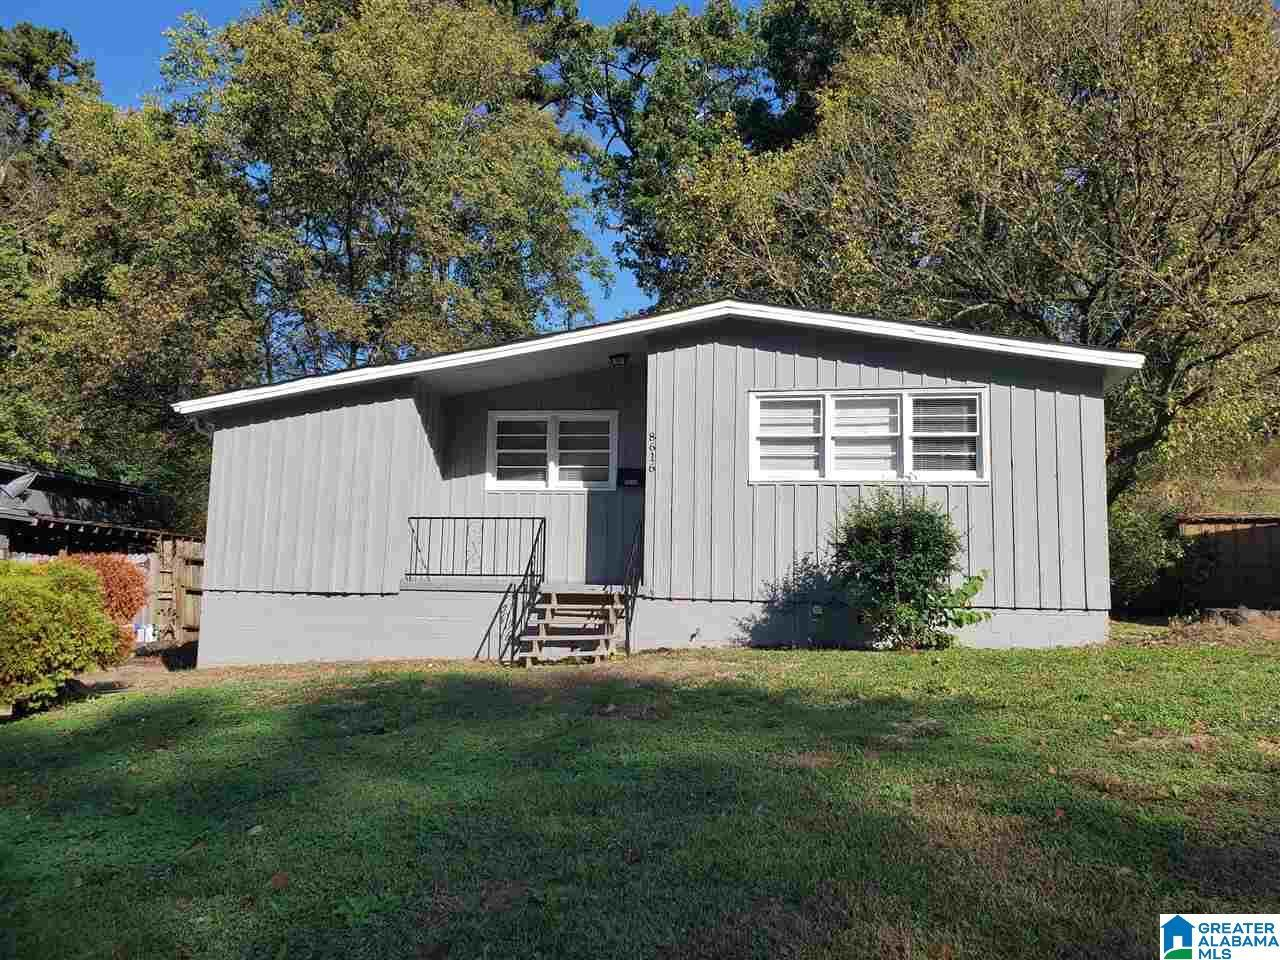 8616 10TH AVE S, Birmingham, AL 35206 - MLS#: 898954